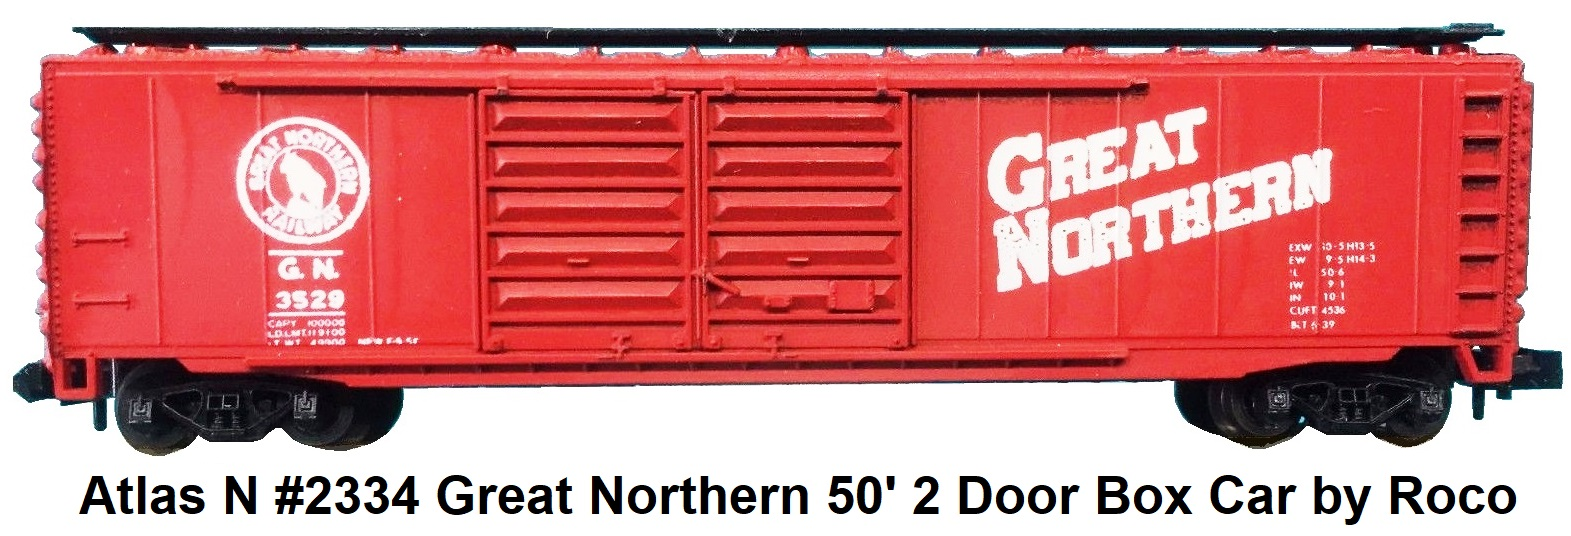 Atlas N #2334 Great Northern 50' 2 Door Box Car by Roco